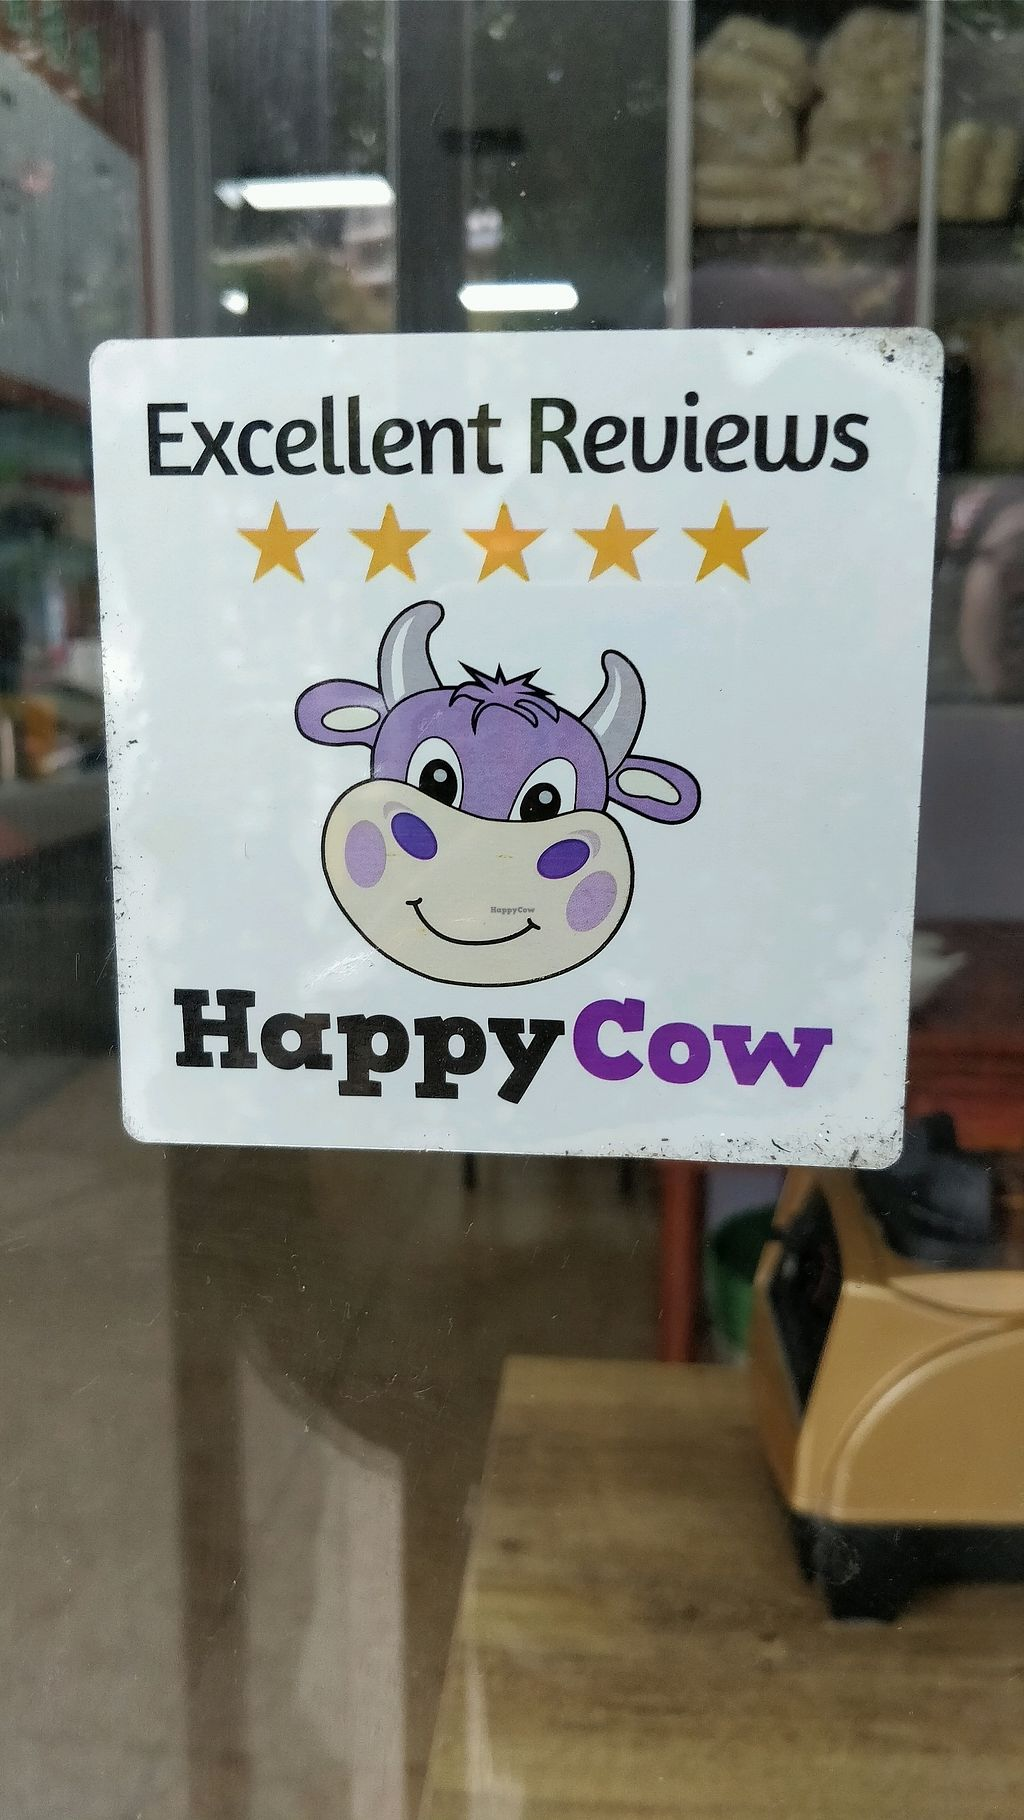 "Photo of Wu You You Su Dou Fang  by <a href=""/members/profile/ultm8"">ultm8</a> <br/>happy cow sticker awarded <br/> April 16, 2018  - <a href='/contact/abuse/image/113082/386712'>Report</a>"